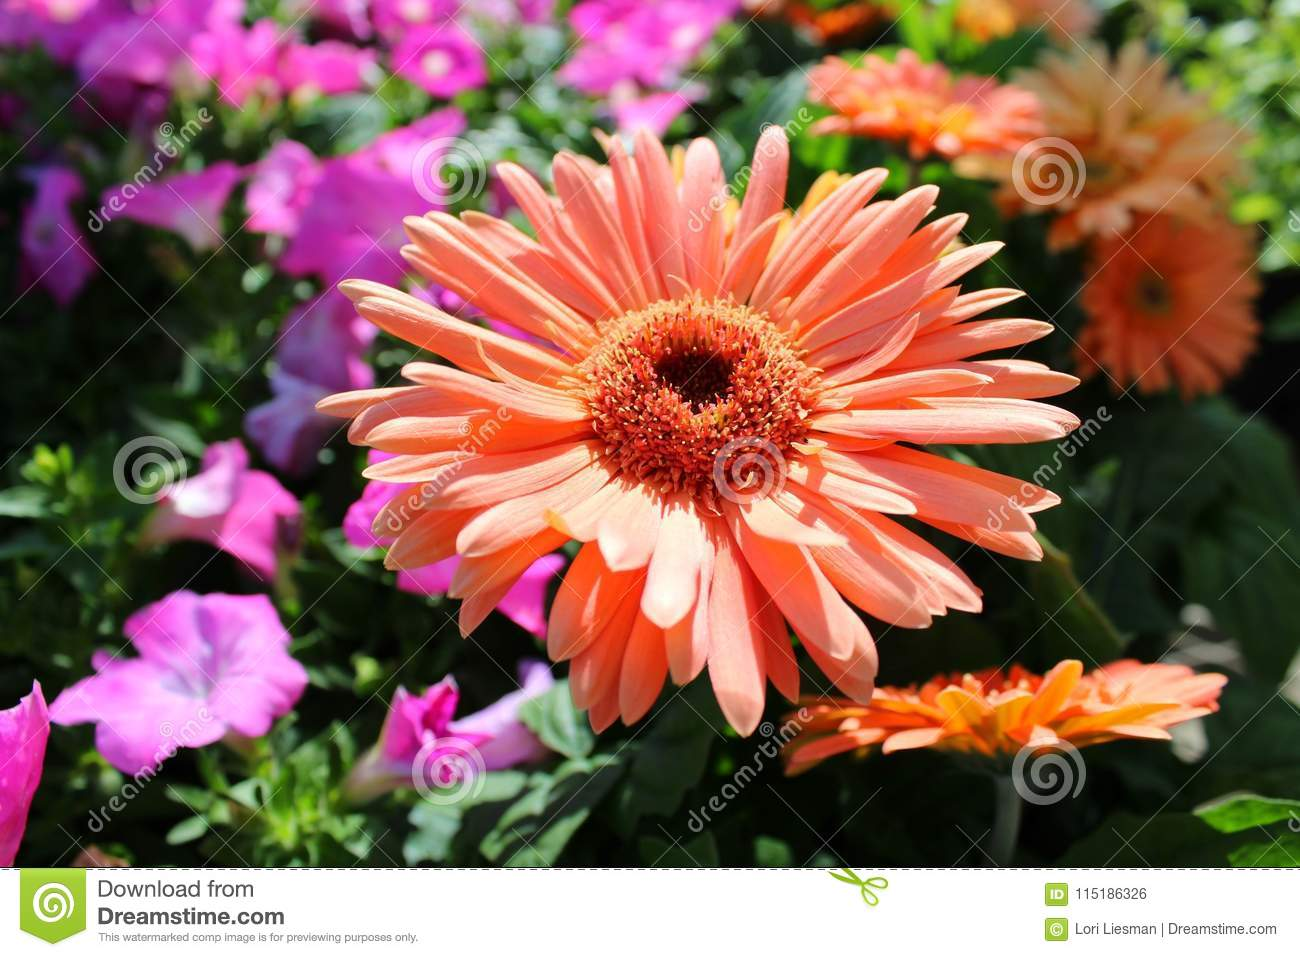 A large peach colored flower that resembles a daisy stock photo close up of a large peach colored flower that looks like a daisy in a field of flowers late in the afternoon izmirmasajfo